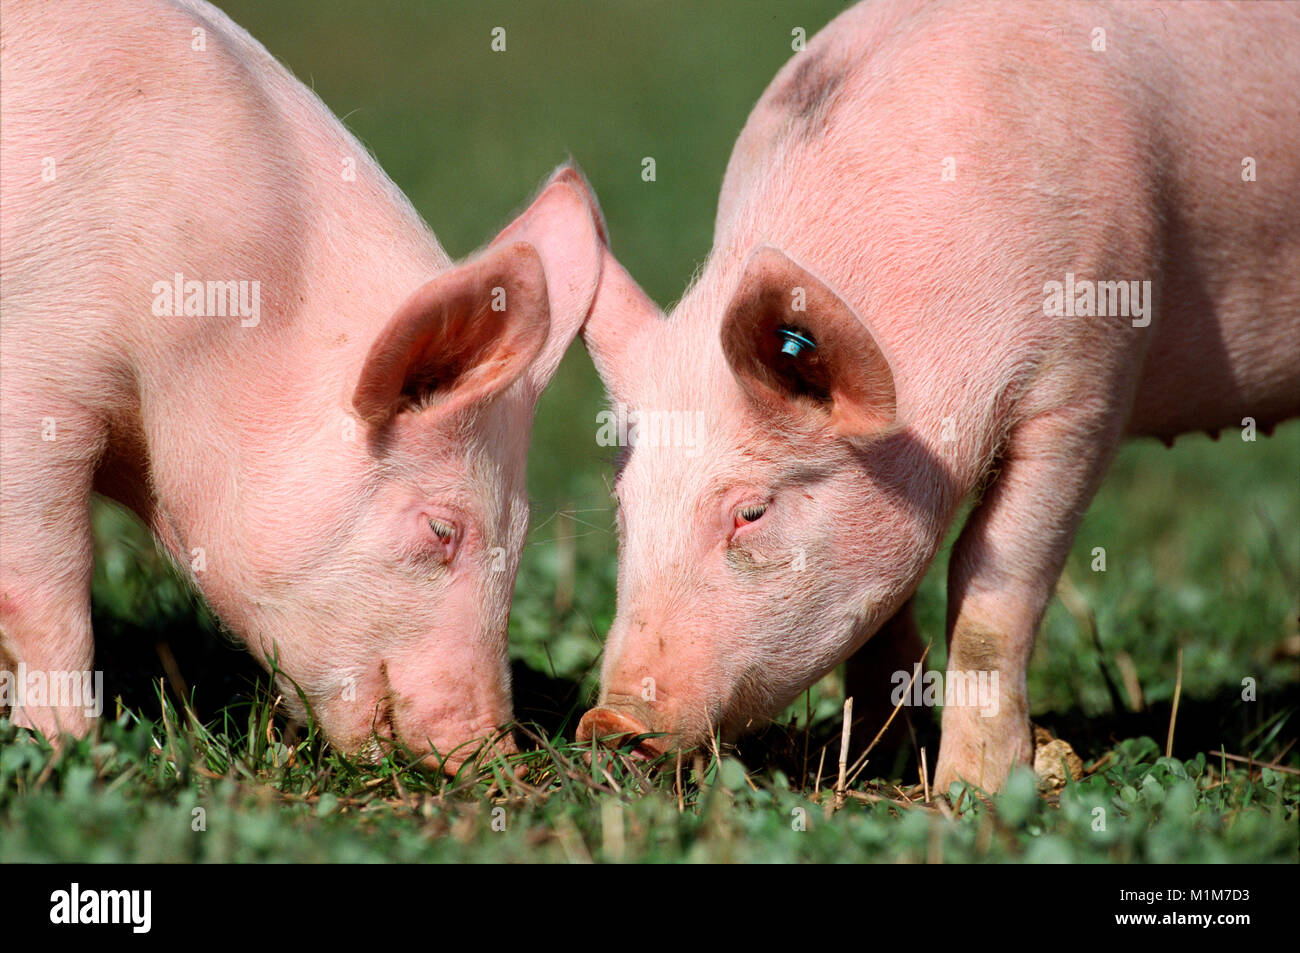 German Landrace Pig. Two pigs foraging on a meadow. Germany - Stock Image